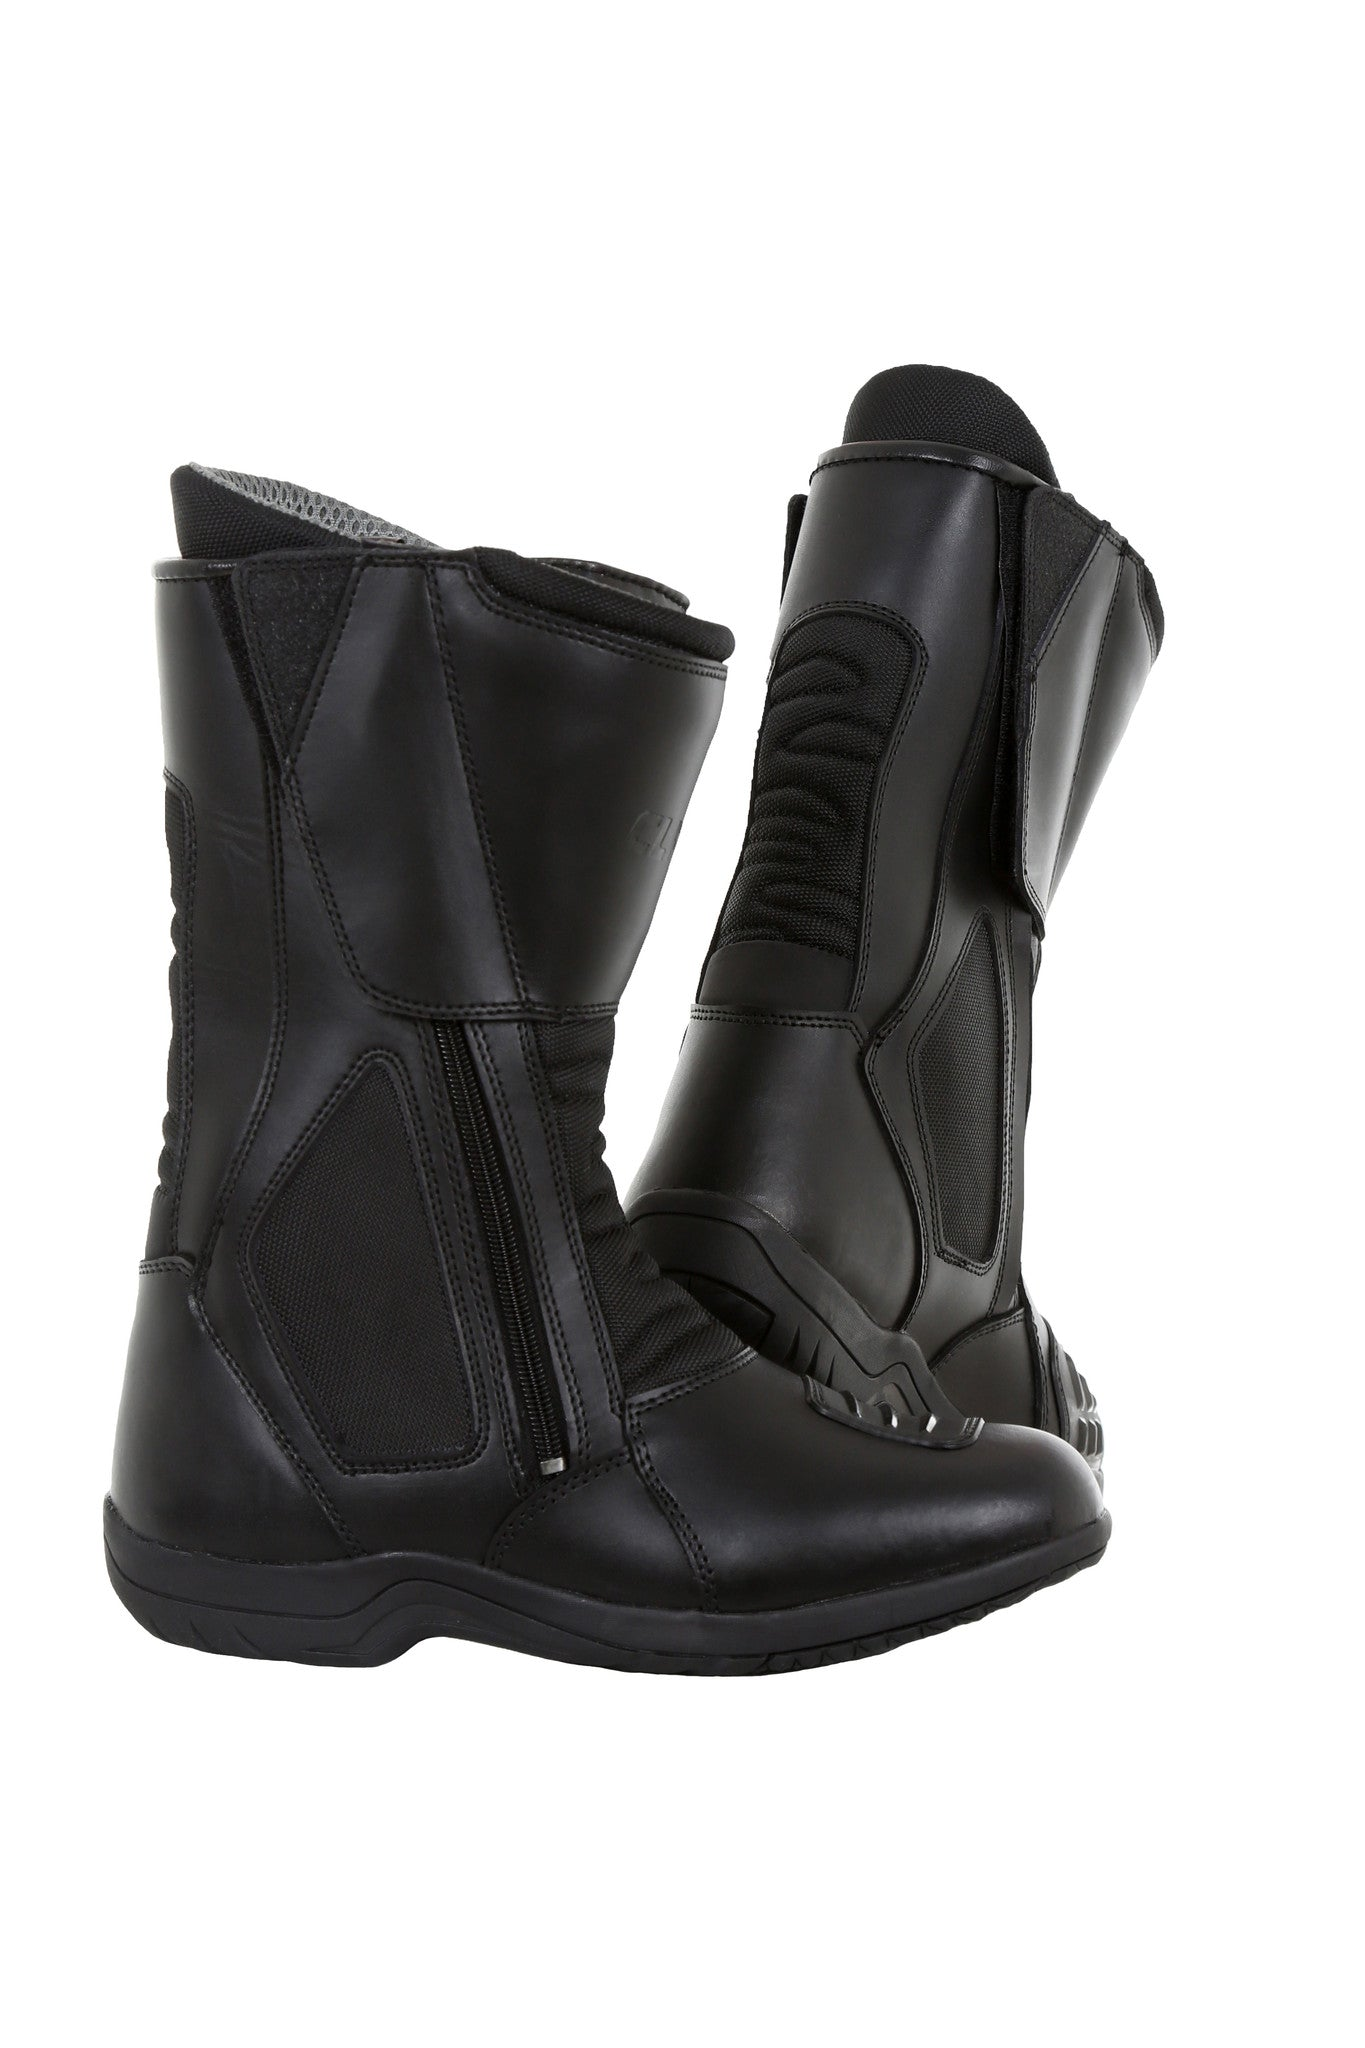 Claw Makan comfort Touring boot